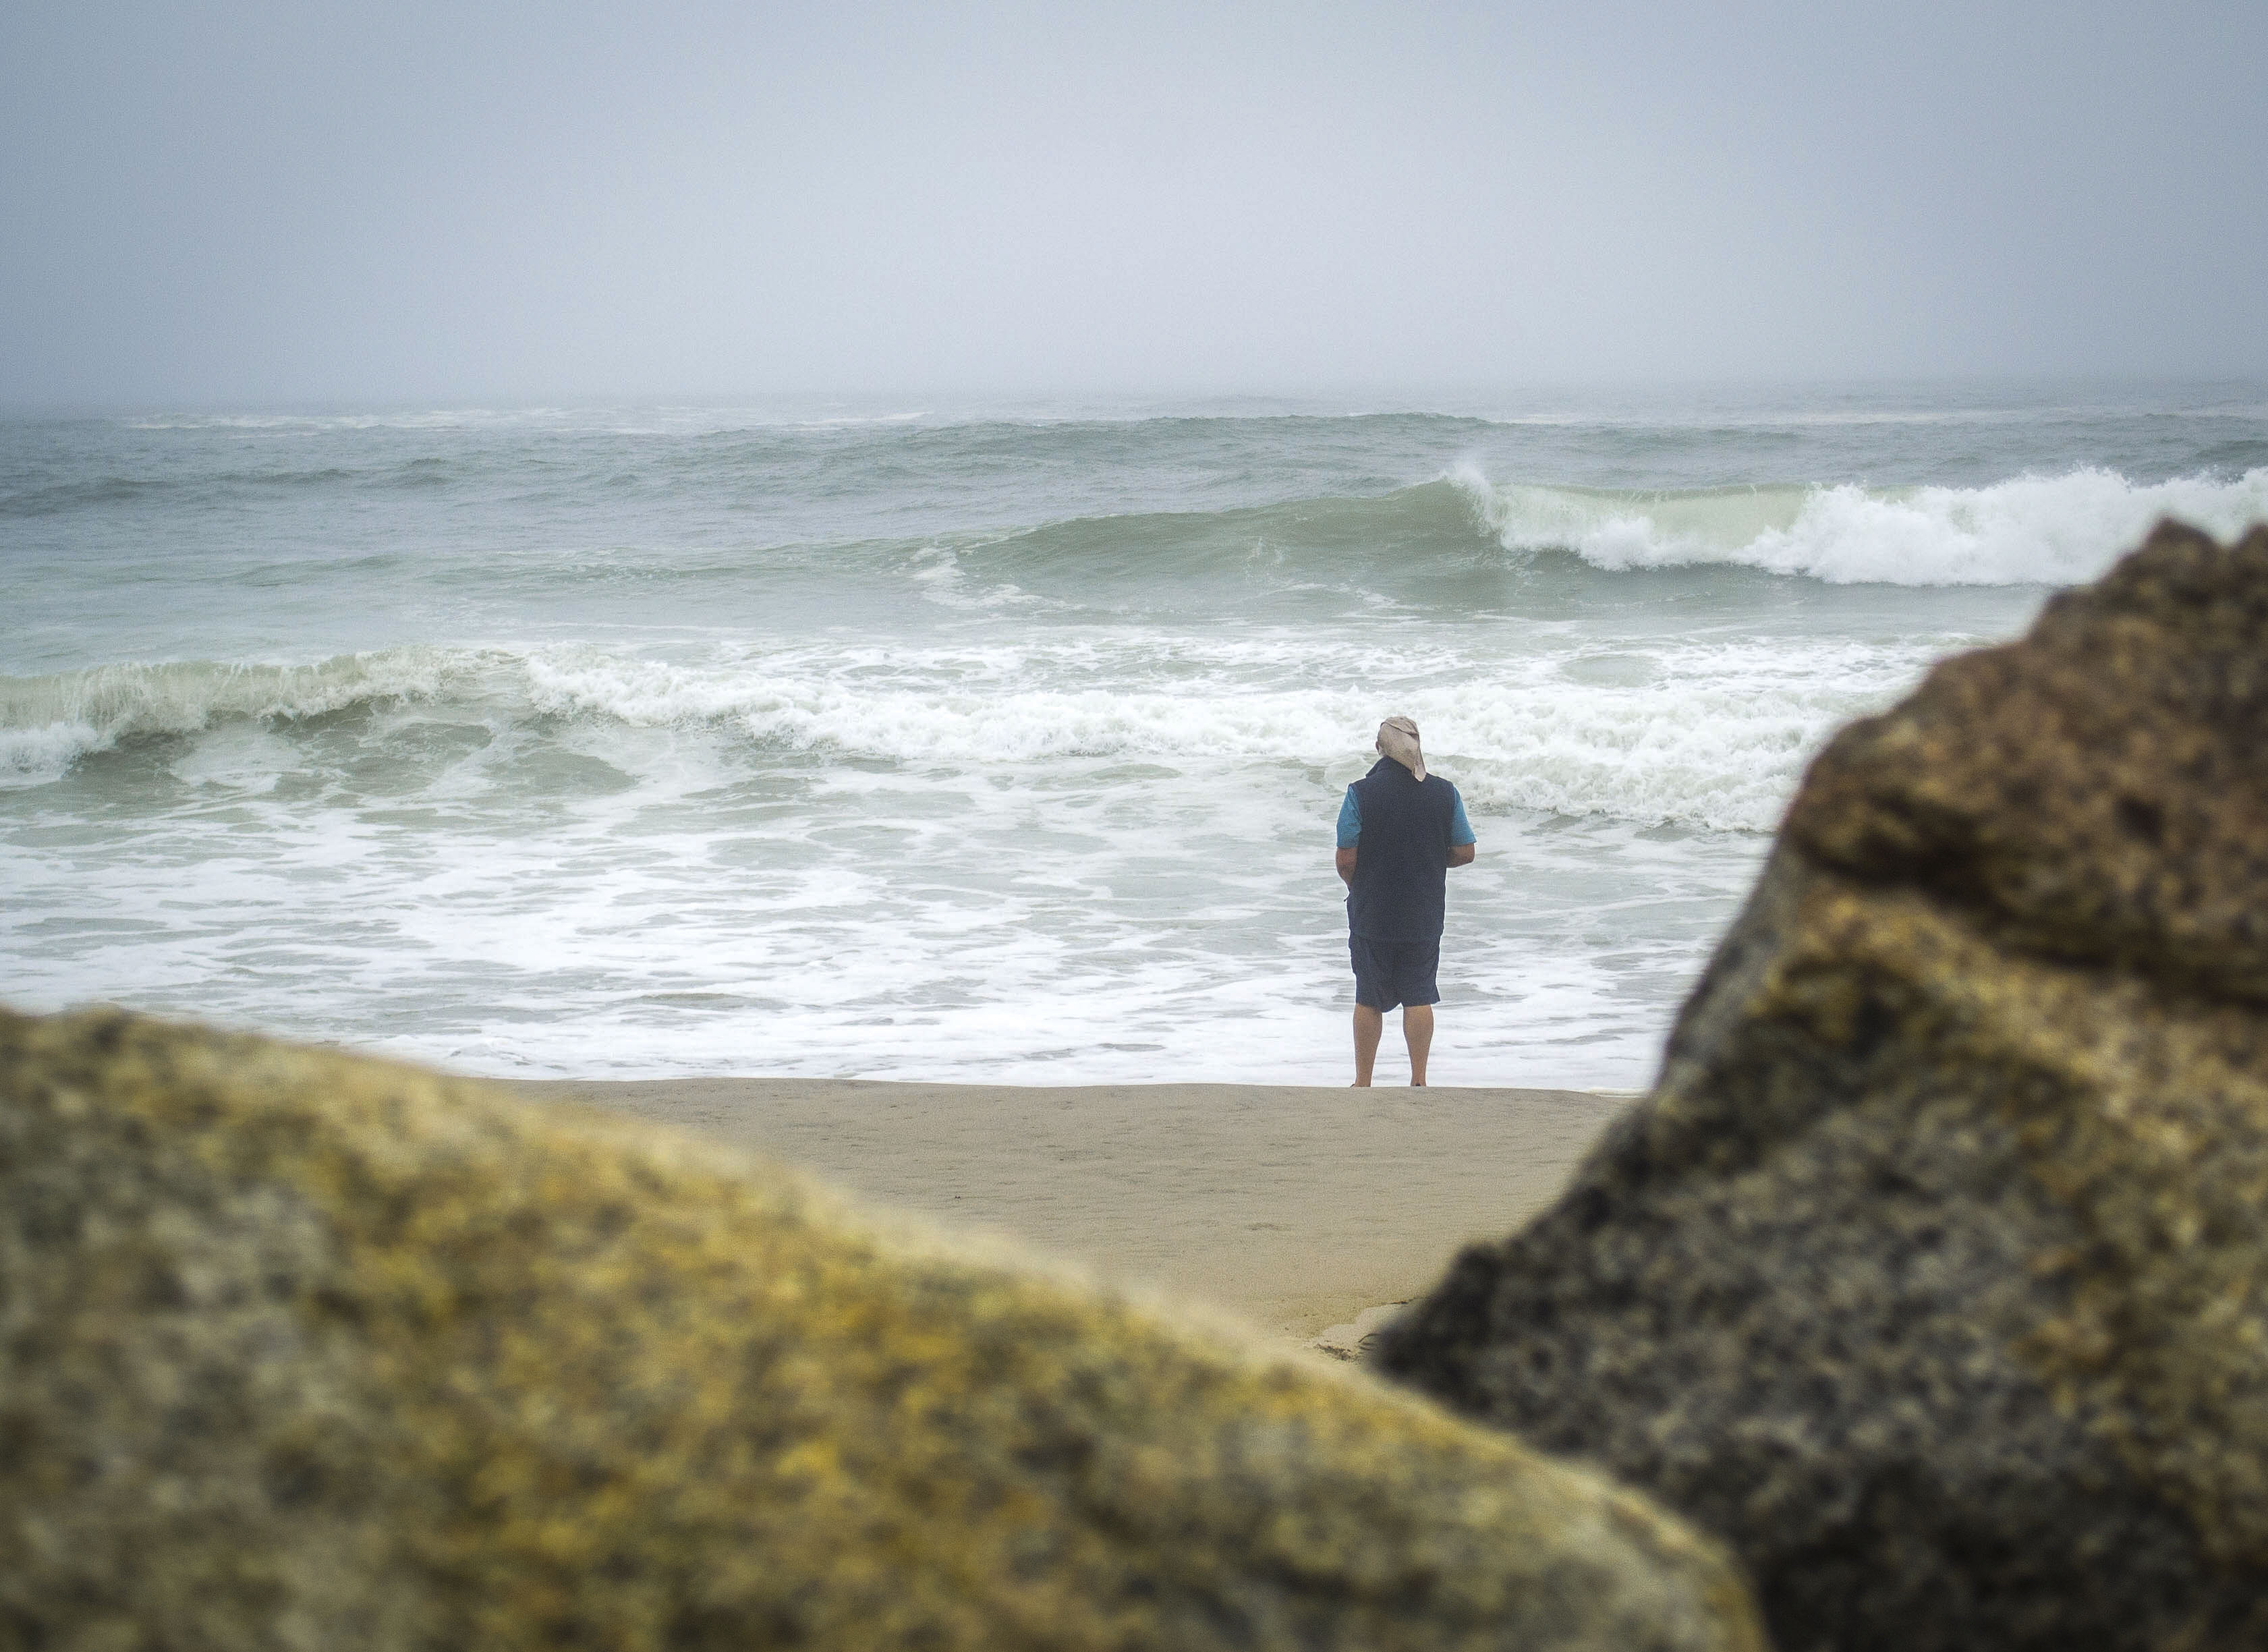 A man looks out toward the Atlantic Ocean at Fortunes Rocks Beach on Sept. 6, as large waves crashed onshore during post-tropical storm Hermine. The highest-annual tides, the King Tides, are expected to arrive on Tuesday and Wednesday next week, bringing with them surges taller than 11 ft. ALAN BENNETT/Journal Tribune